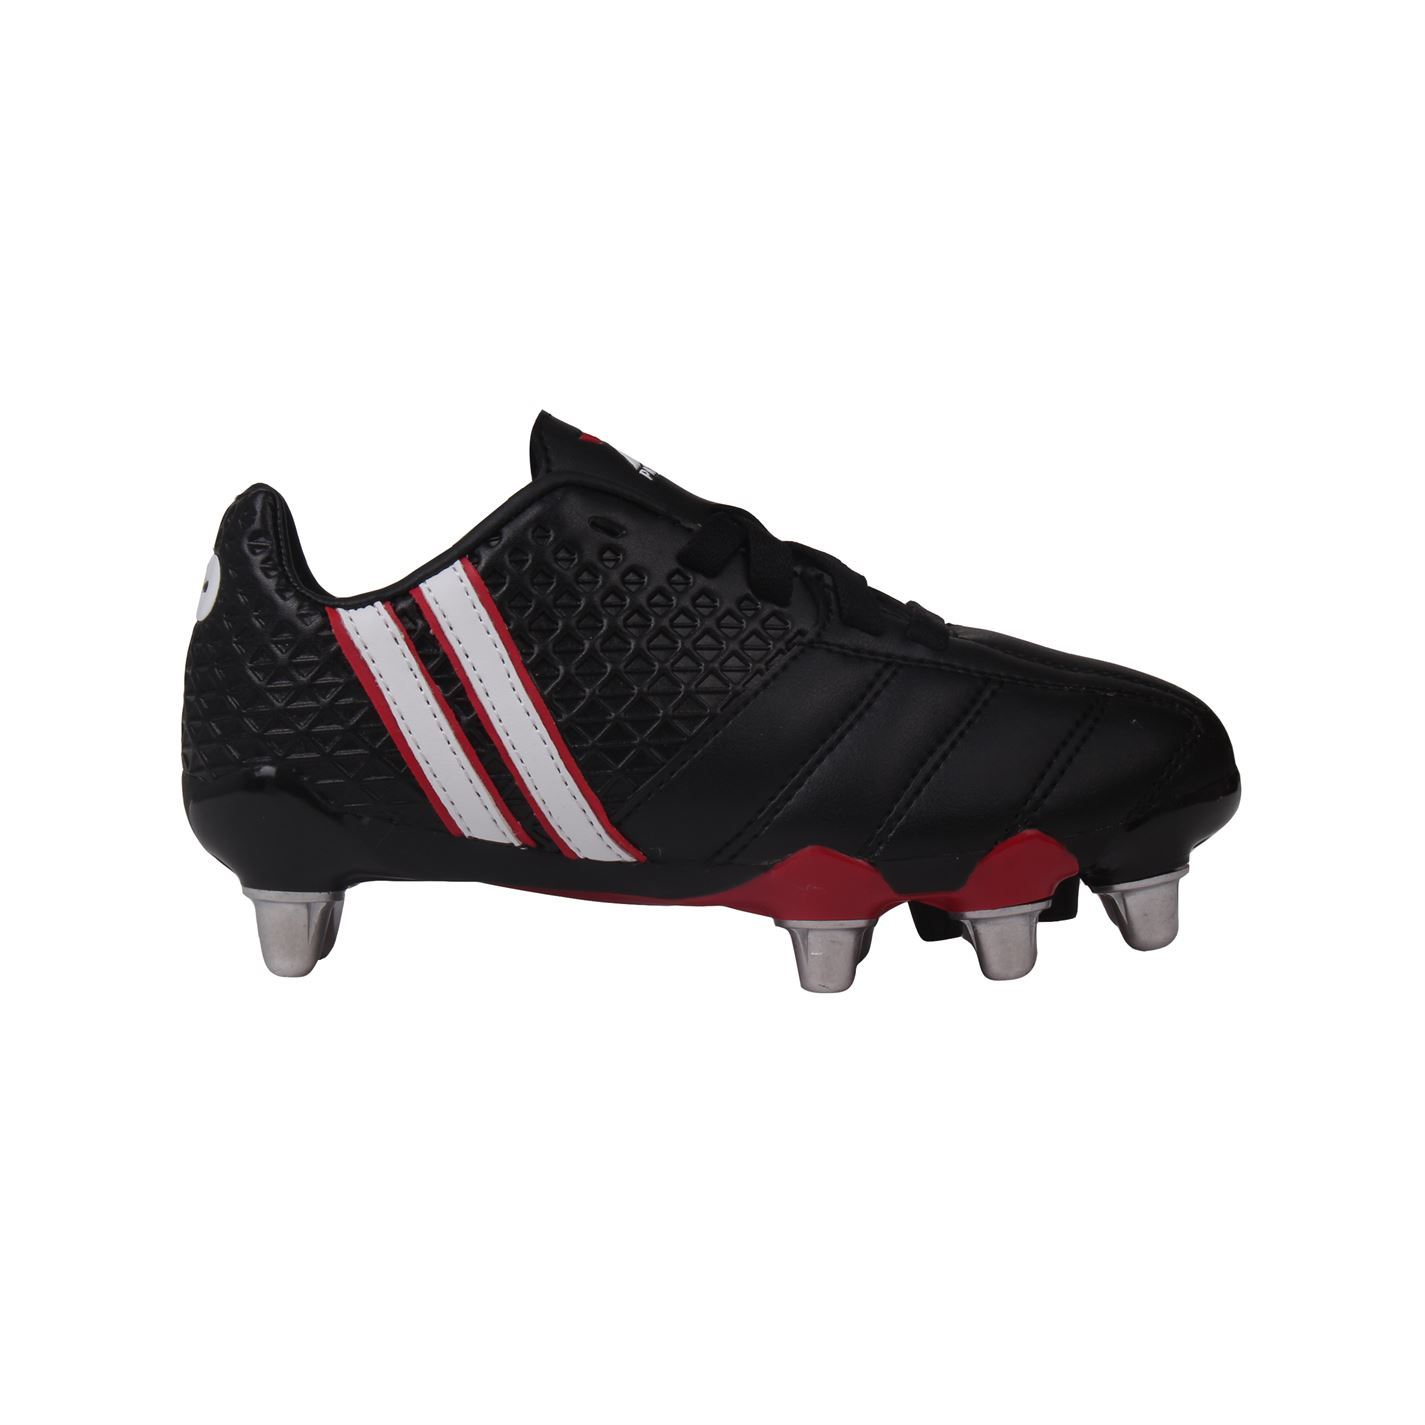 2e68b3c5e Details about Patrick Power X Rugby Boots Black White Juniors Studded Boots  Cleats